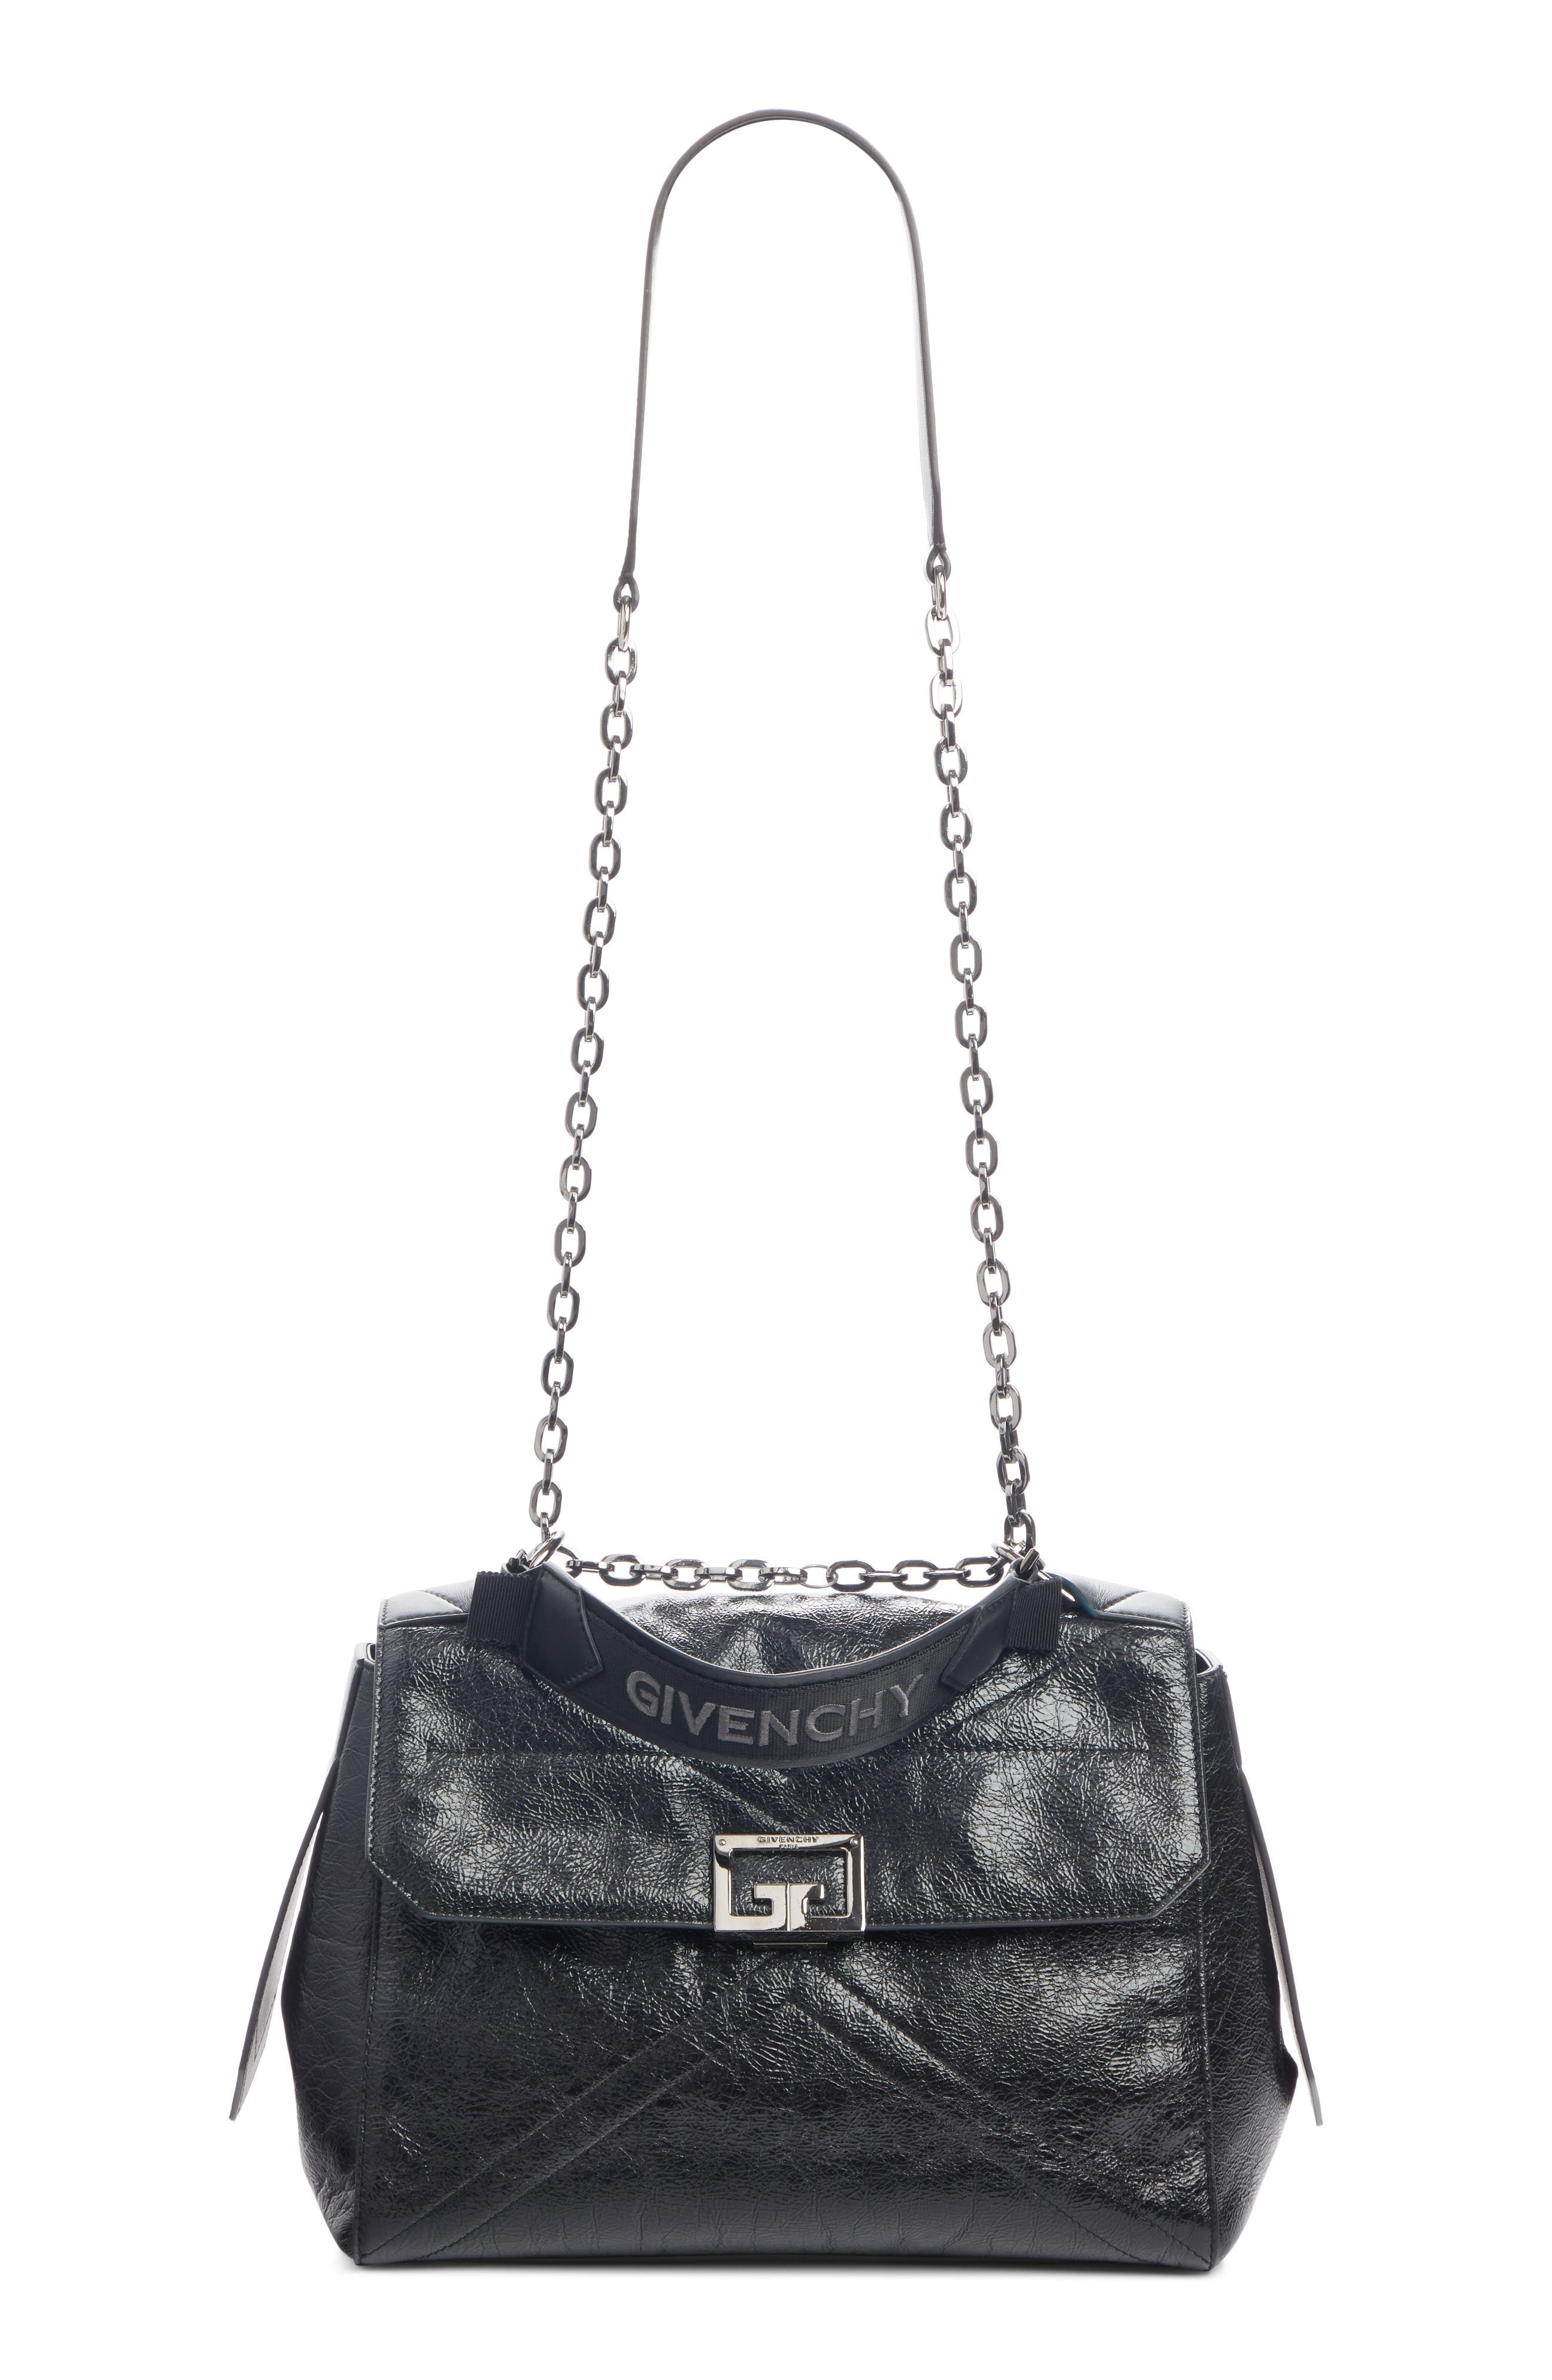 Givenchy ID Medium Leather Top Handle Bag | Nordstrom